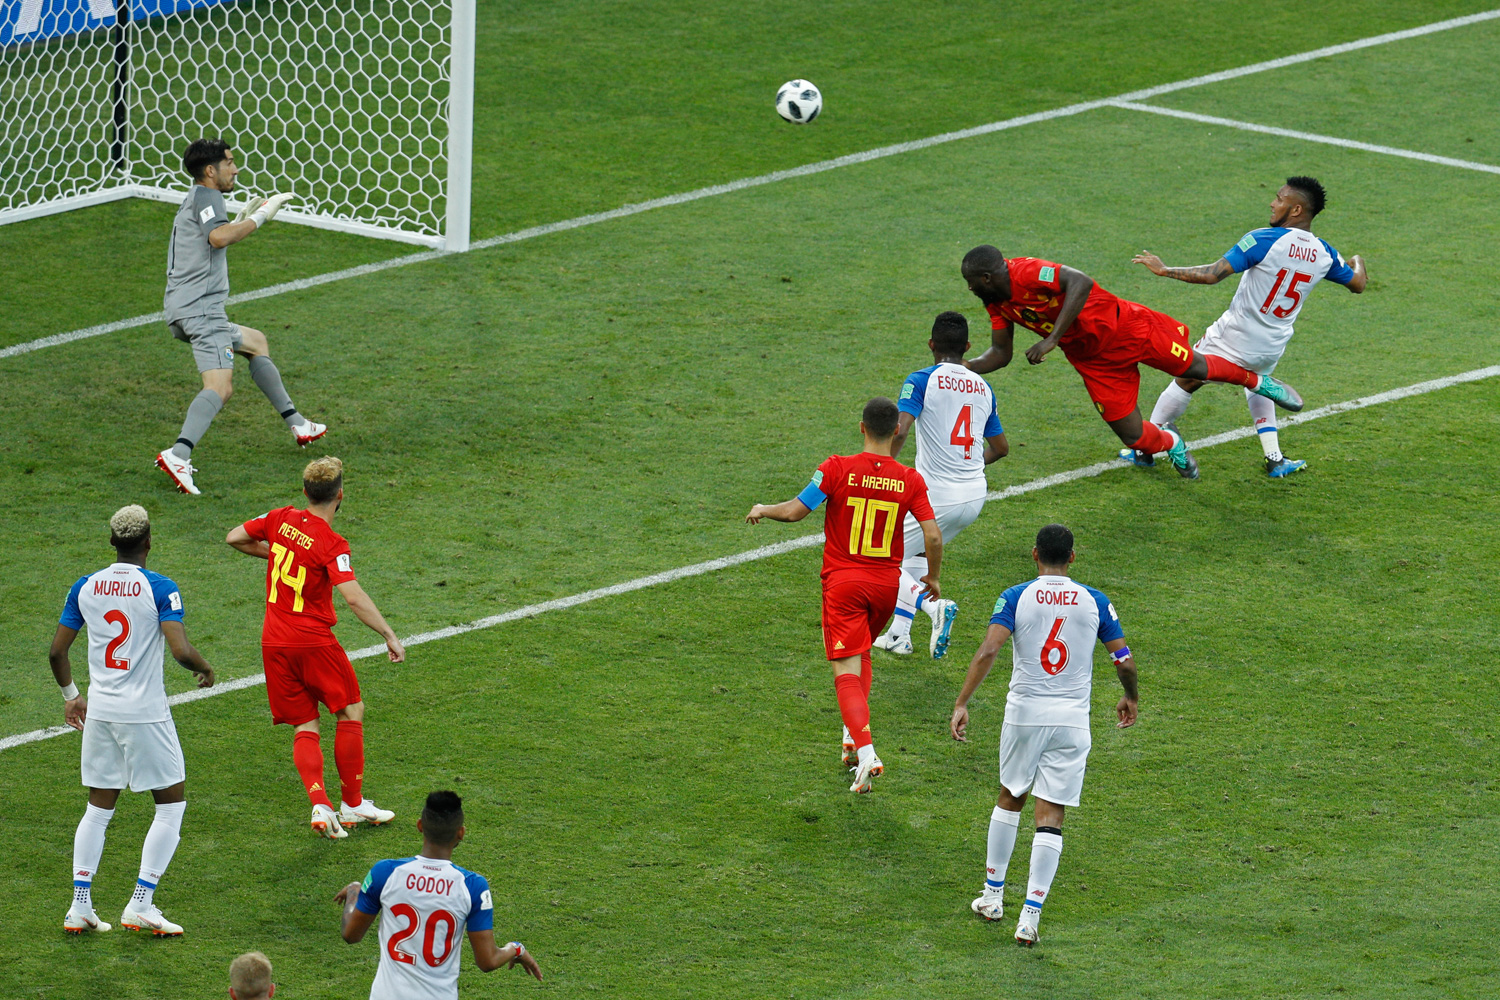 "<div class=""meta image-caption""><div class=""origin-logo origin-image none""><span>none</span></div><span class=""caption-text"">Belgium's Romelu Lukaku, top second right, heads the ball to score his side's second goal during the group G match between Belgium and Panama (Victor R. Caivano/AP Photo)</span></div>"